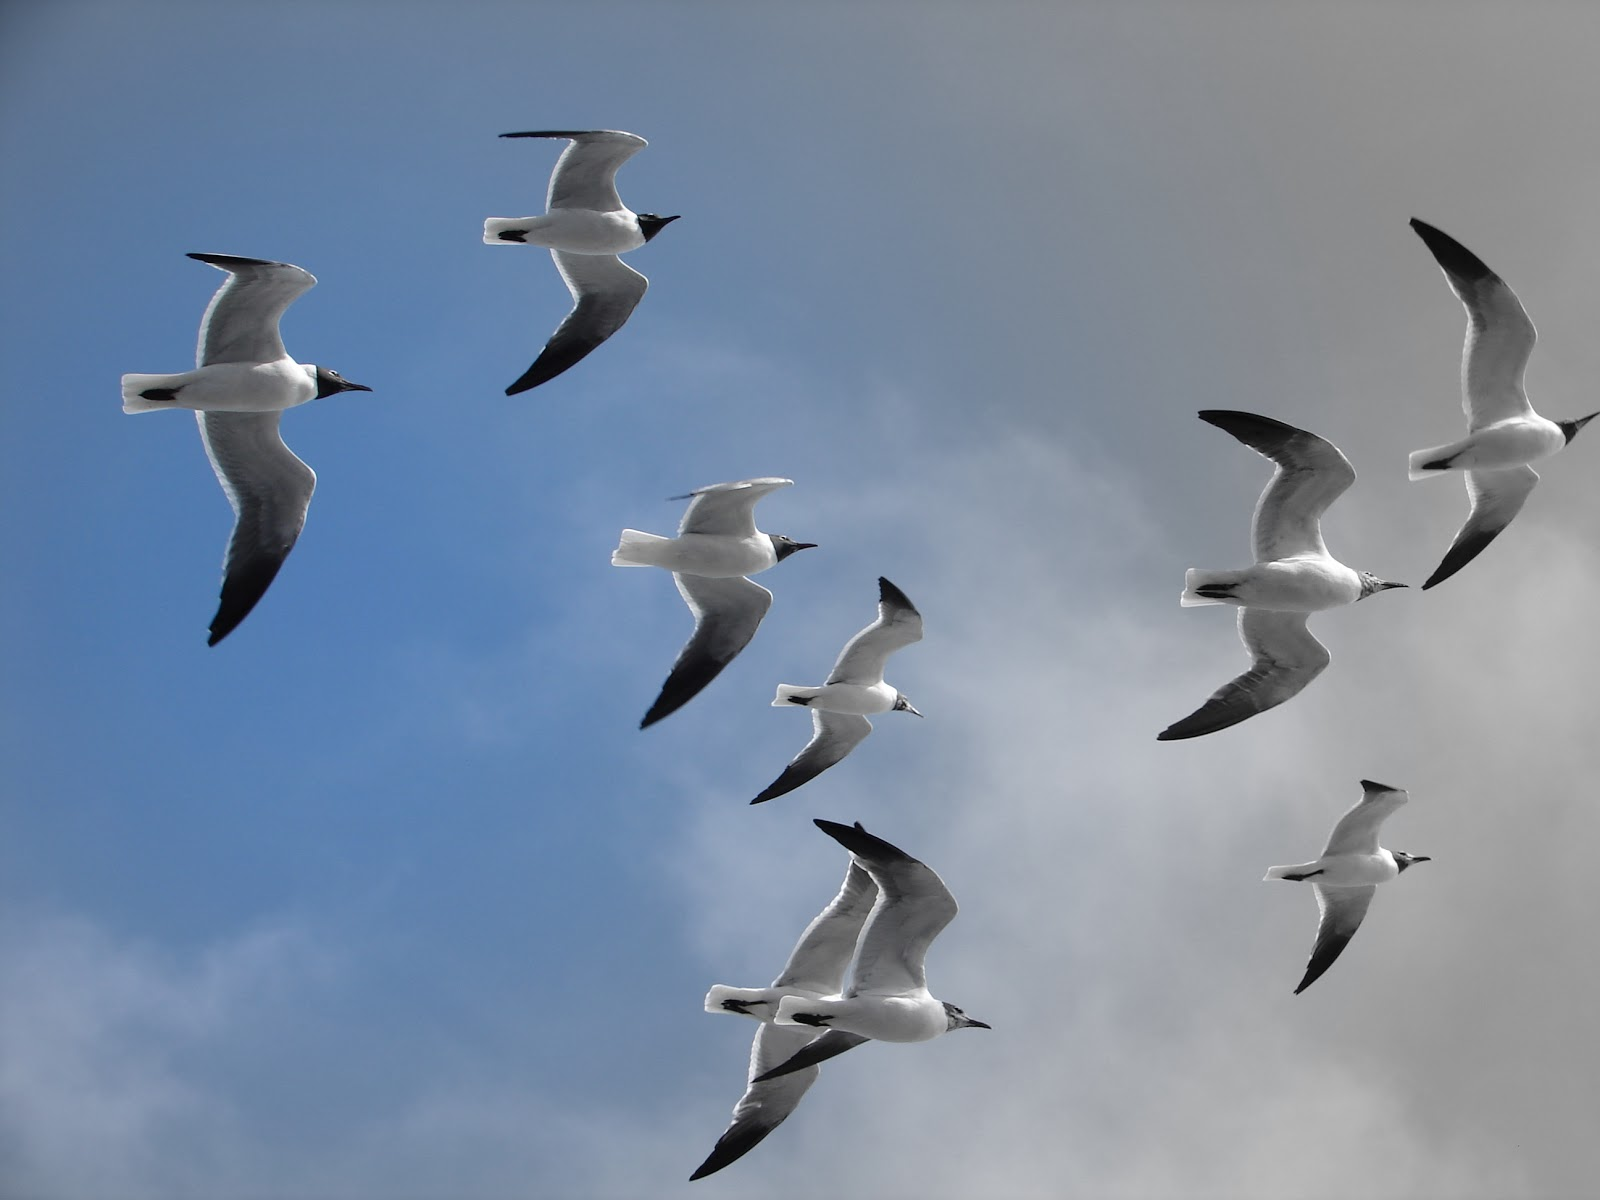 1000 Images About Birds In Flight On Pinterest Swallow